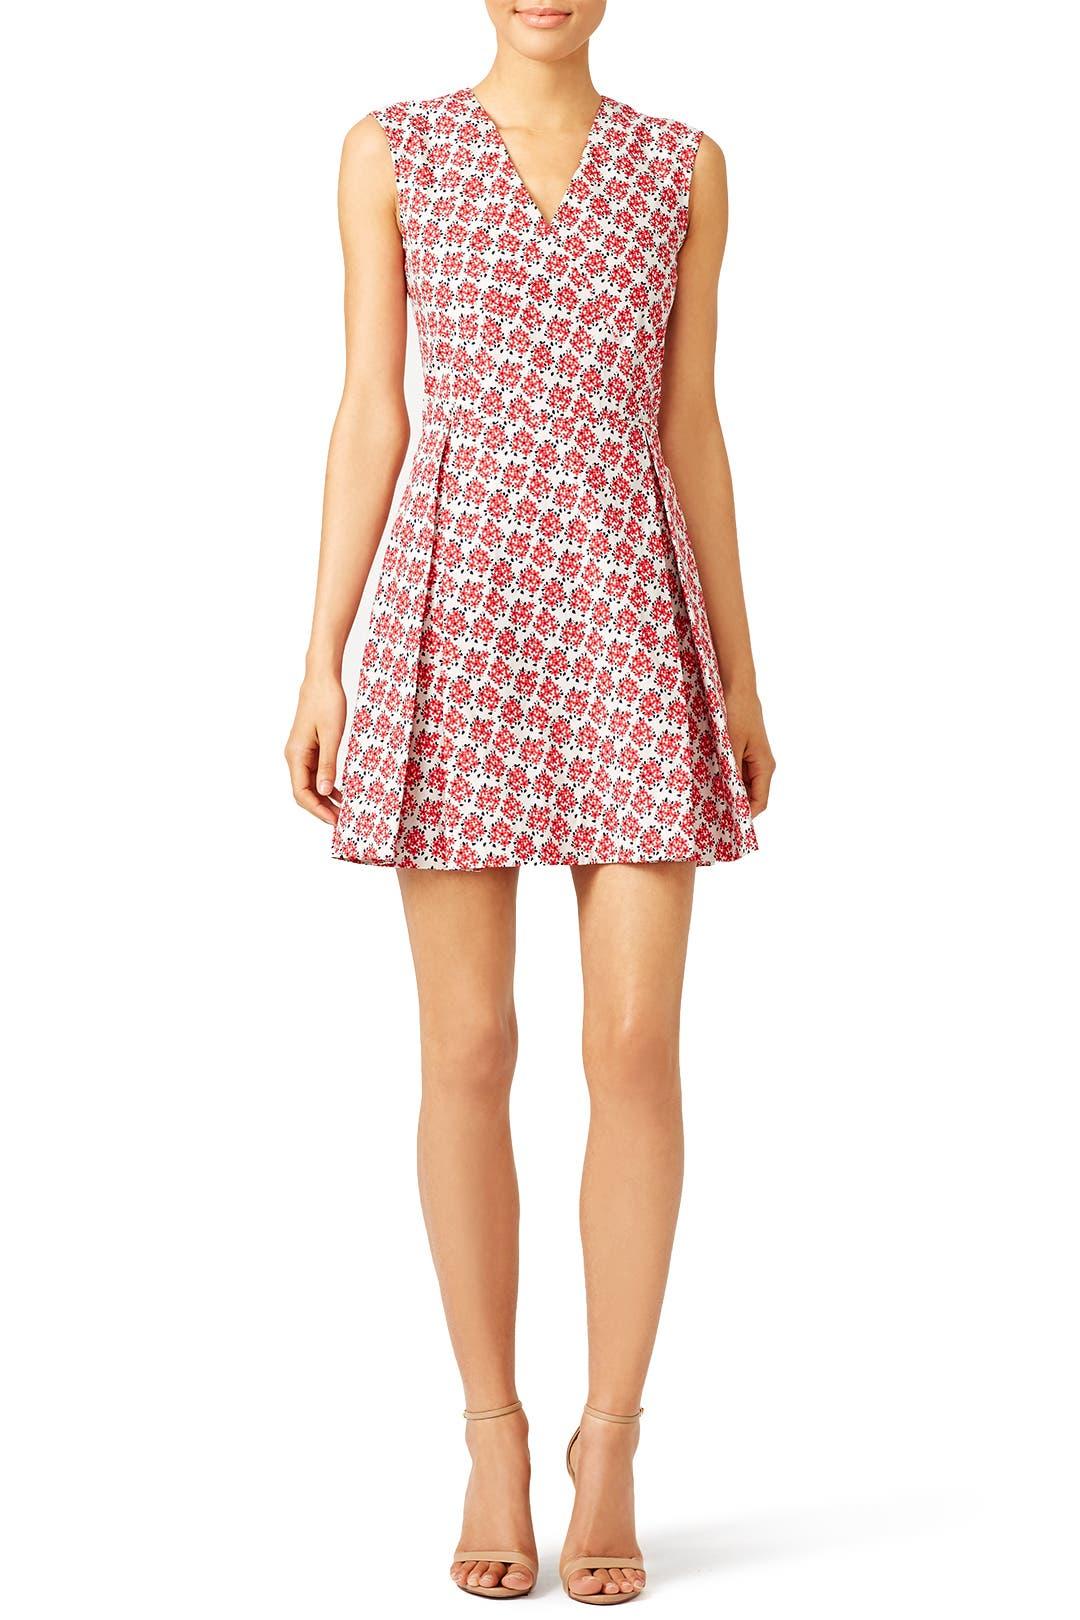 Rosy picnic dress by suno for 75 rent the runway for Rent wedding dress dc